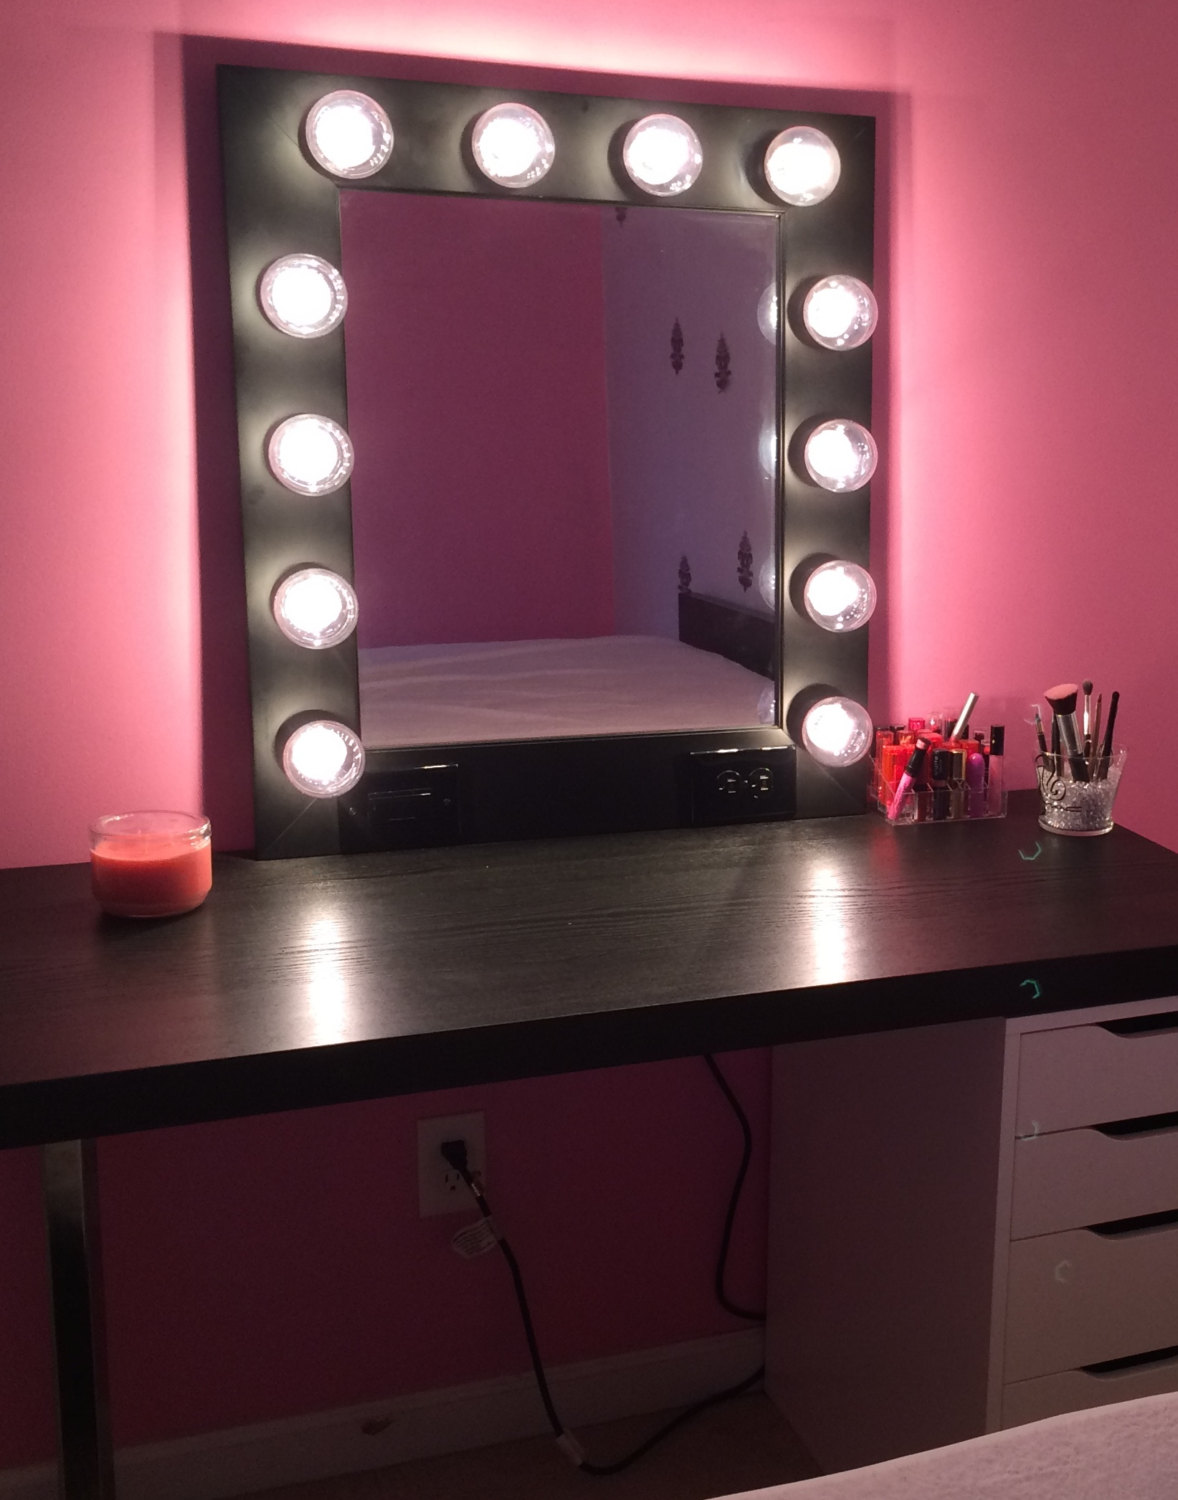 exquisite wall vanity mirror with lights  warisan lighting -  exquisite wall vanity mirror with lights